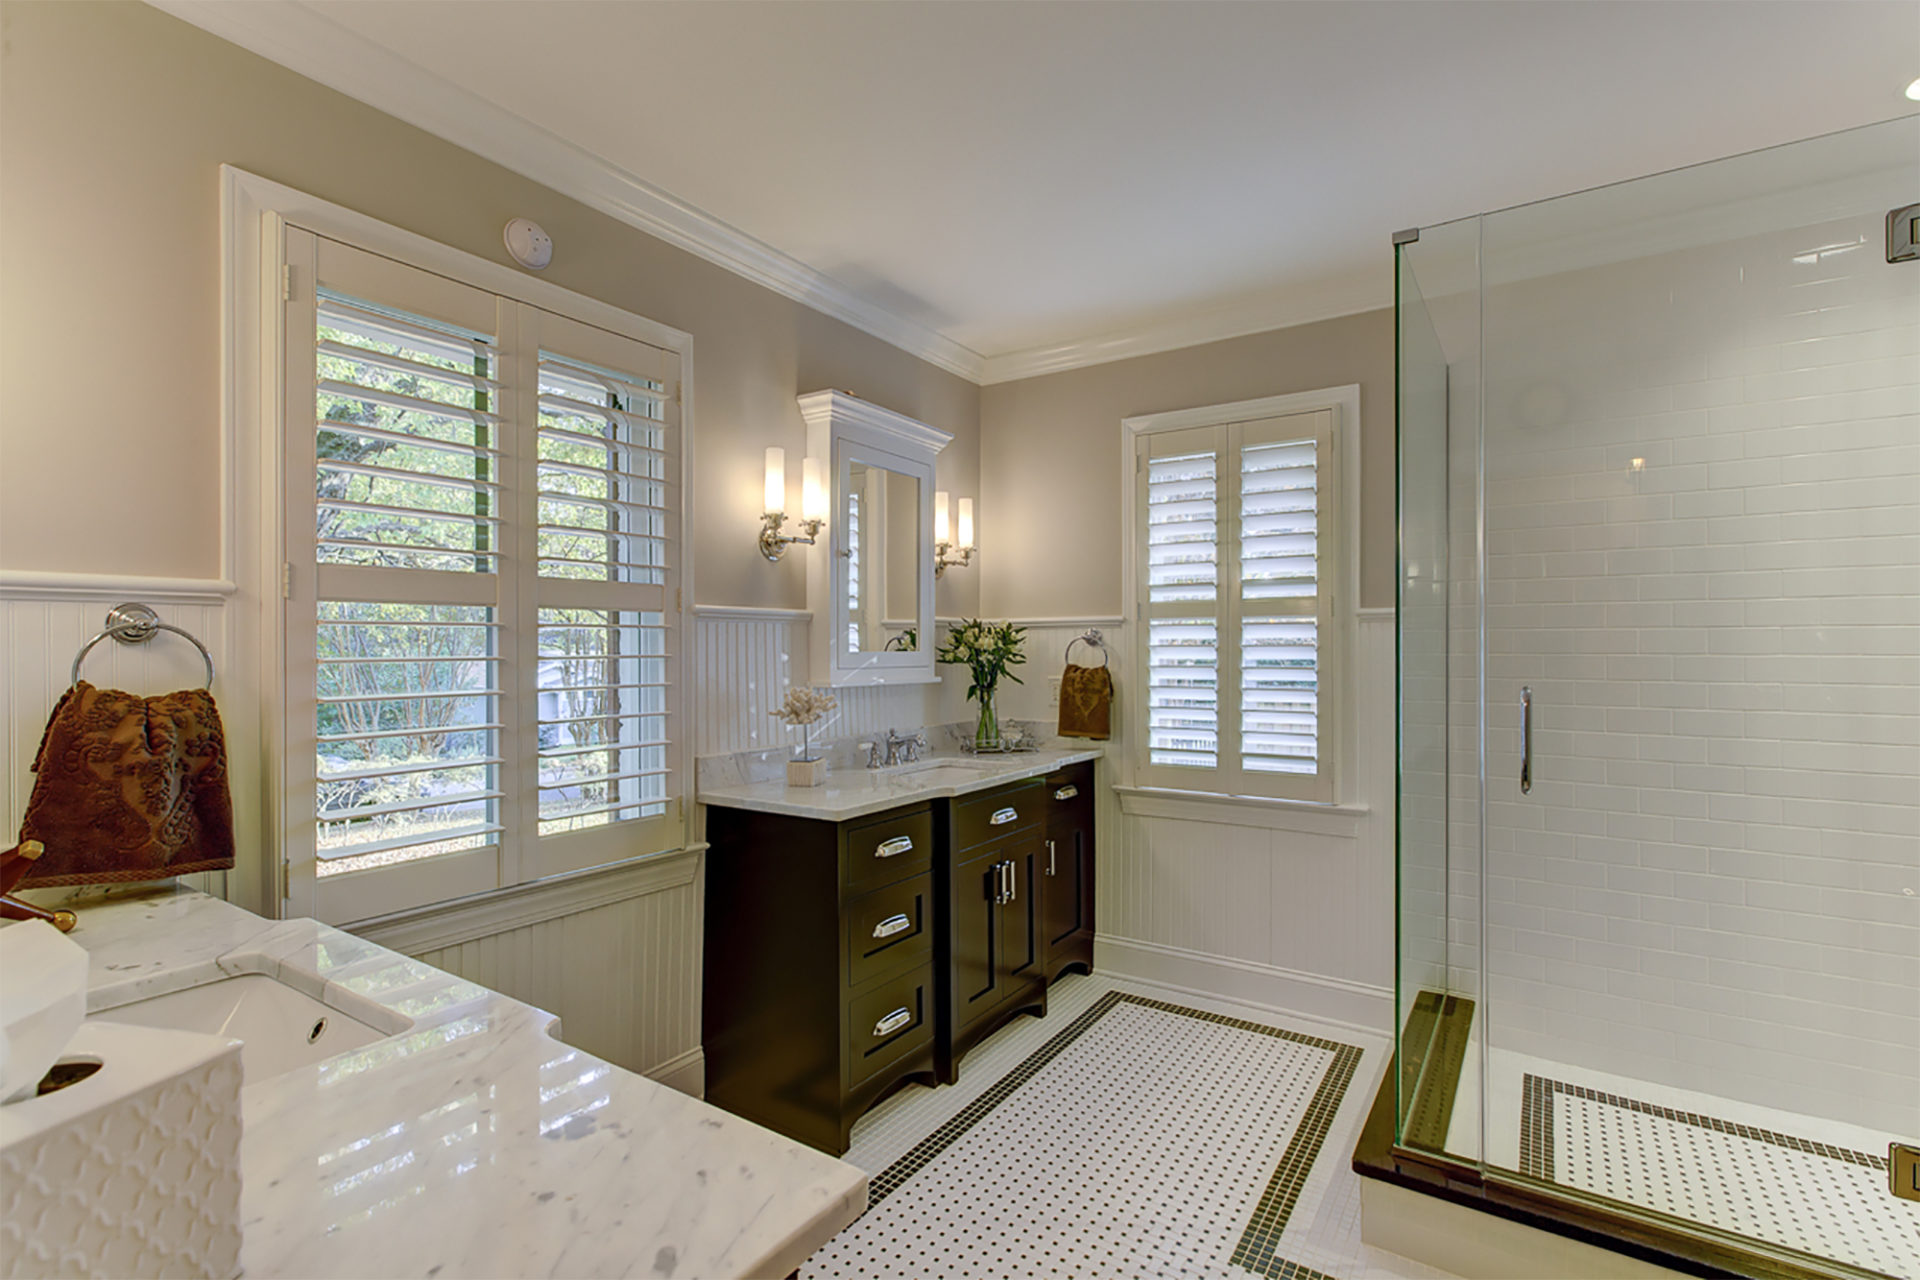 bathroom remodel with white floor tile and glass shower door